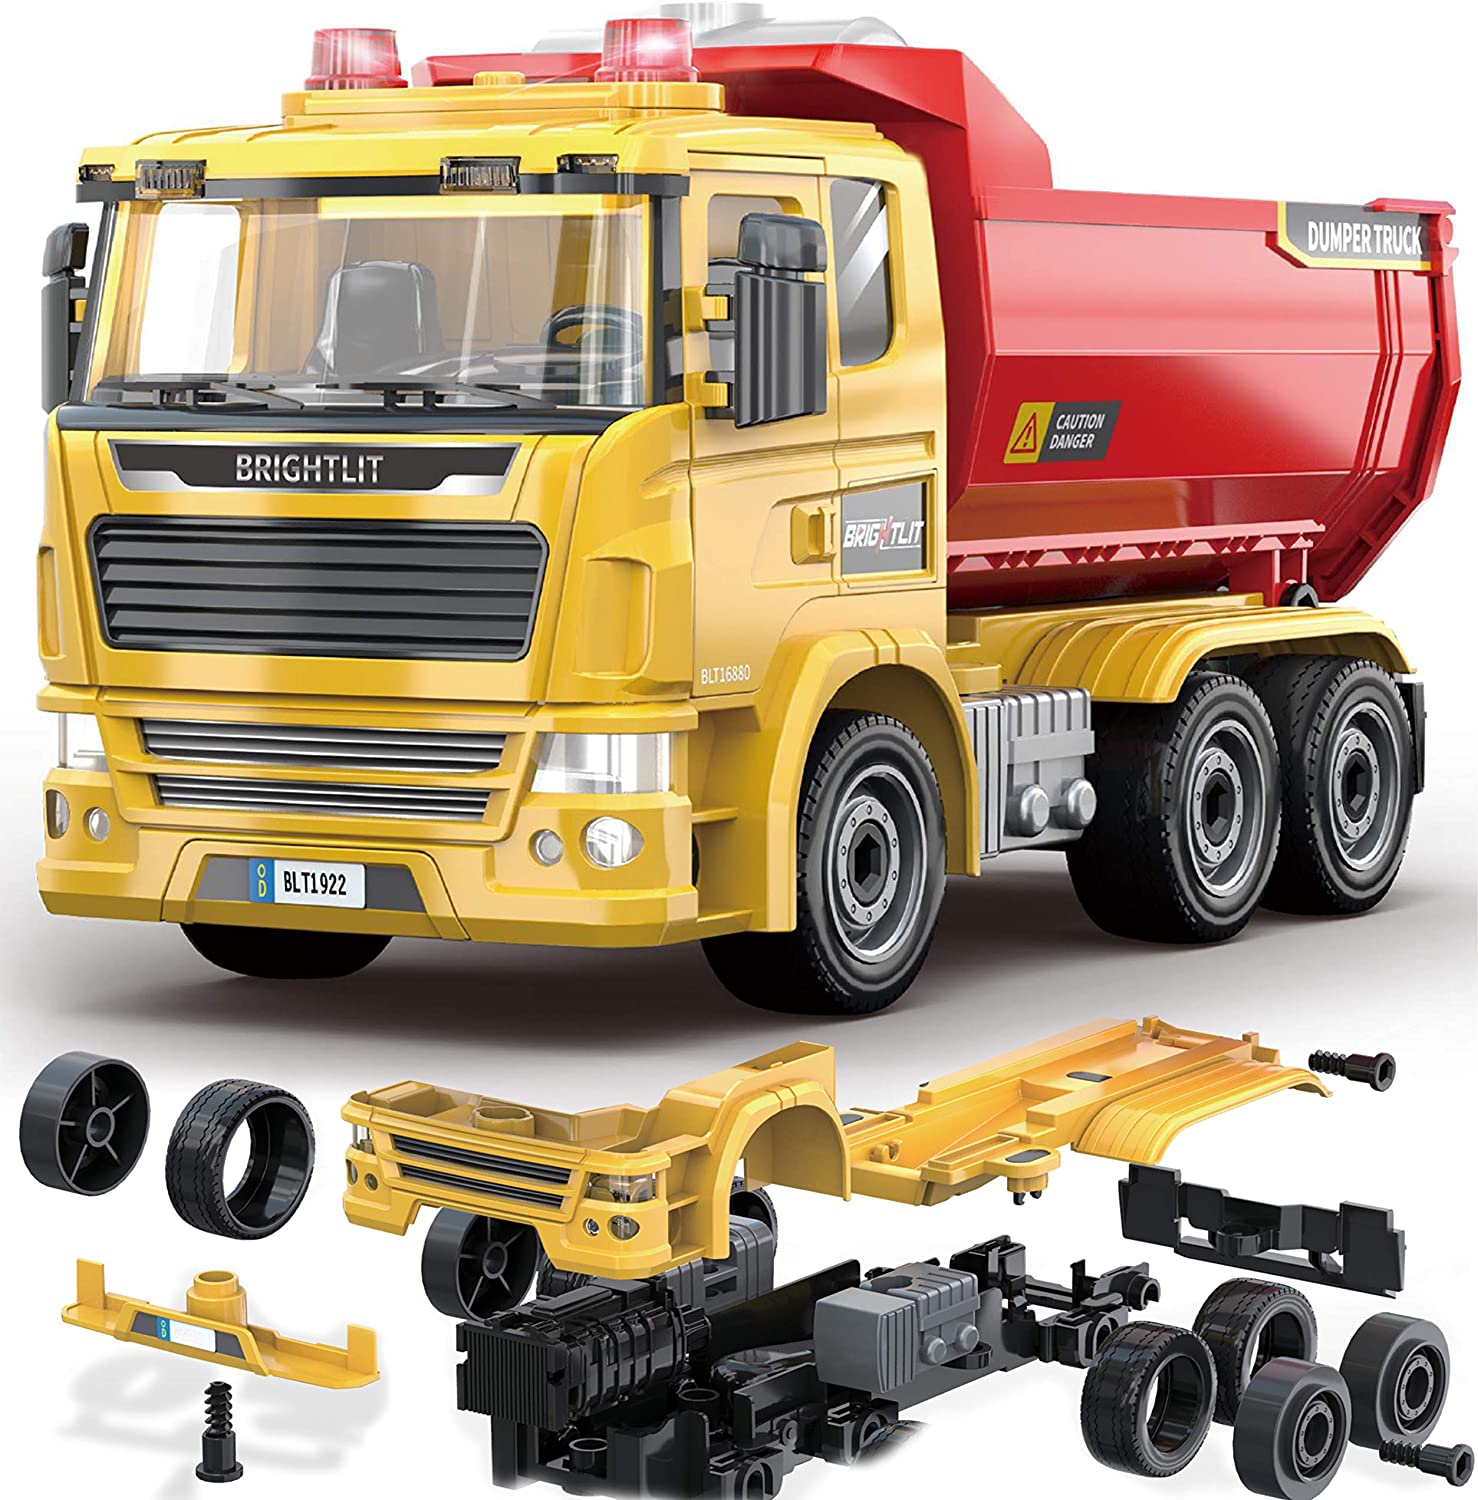 DIY Assembly Kit w// Realistic Lights and Sounds Educational Gift Idea for Kids Ages 5 6 7 8 9 Years Old 88 Pcs Take Apart STEM Toys Build Your Own Construction Truck Dump Truck